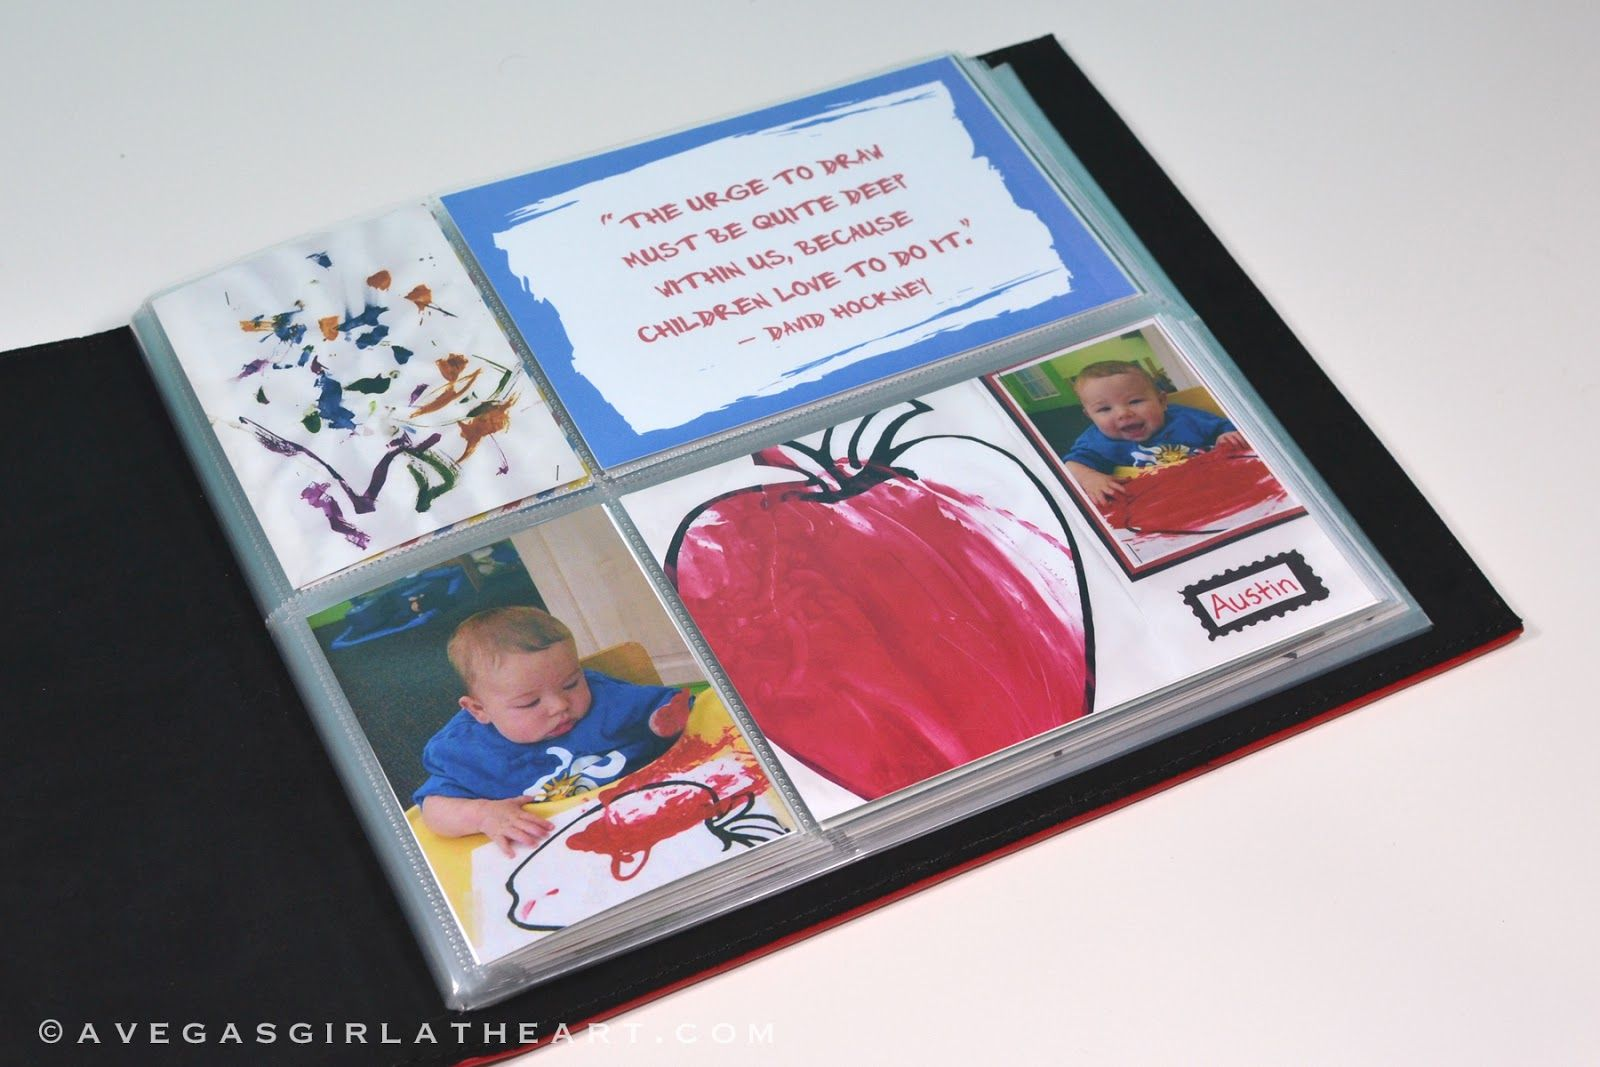 A Vegas Girl at Heart: Children's Art Scrapbook/Project Life Mini Album